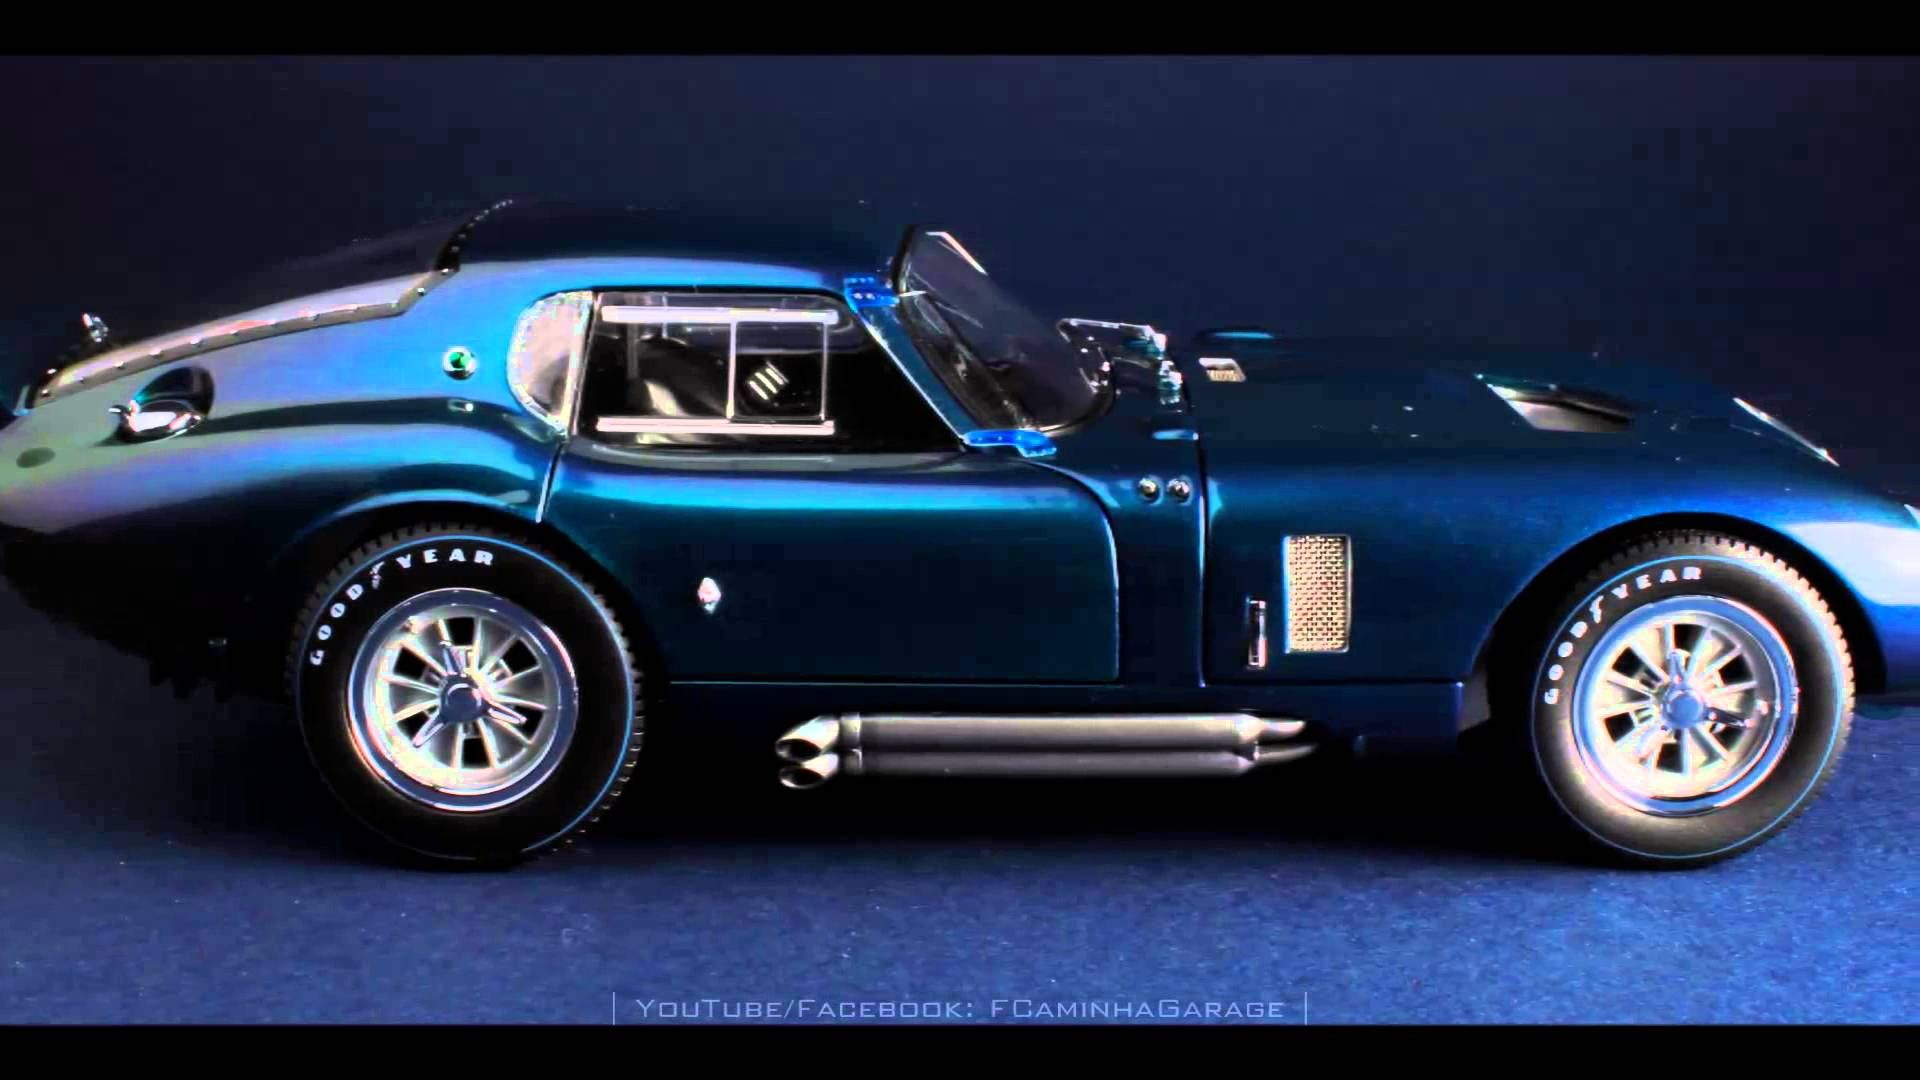 Color online standox - 1 18 1964 Shelby Daytona Cobra Coupe In Standox Daytona Paradise By Exoto The First